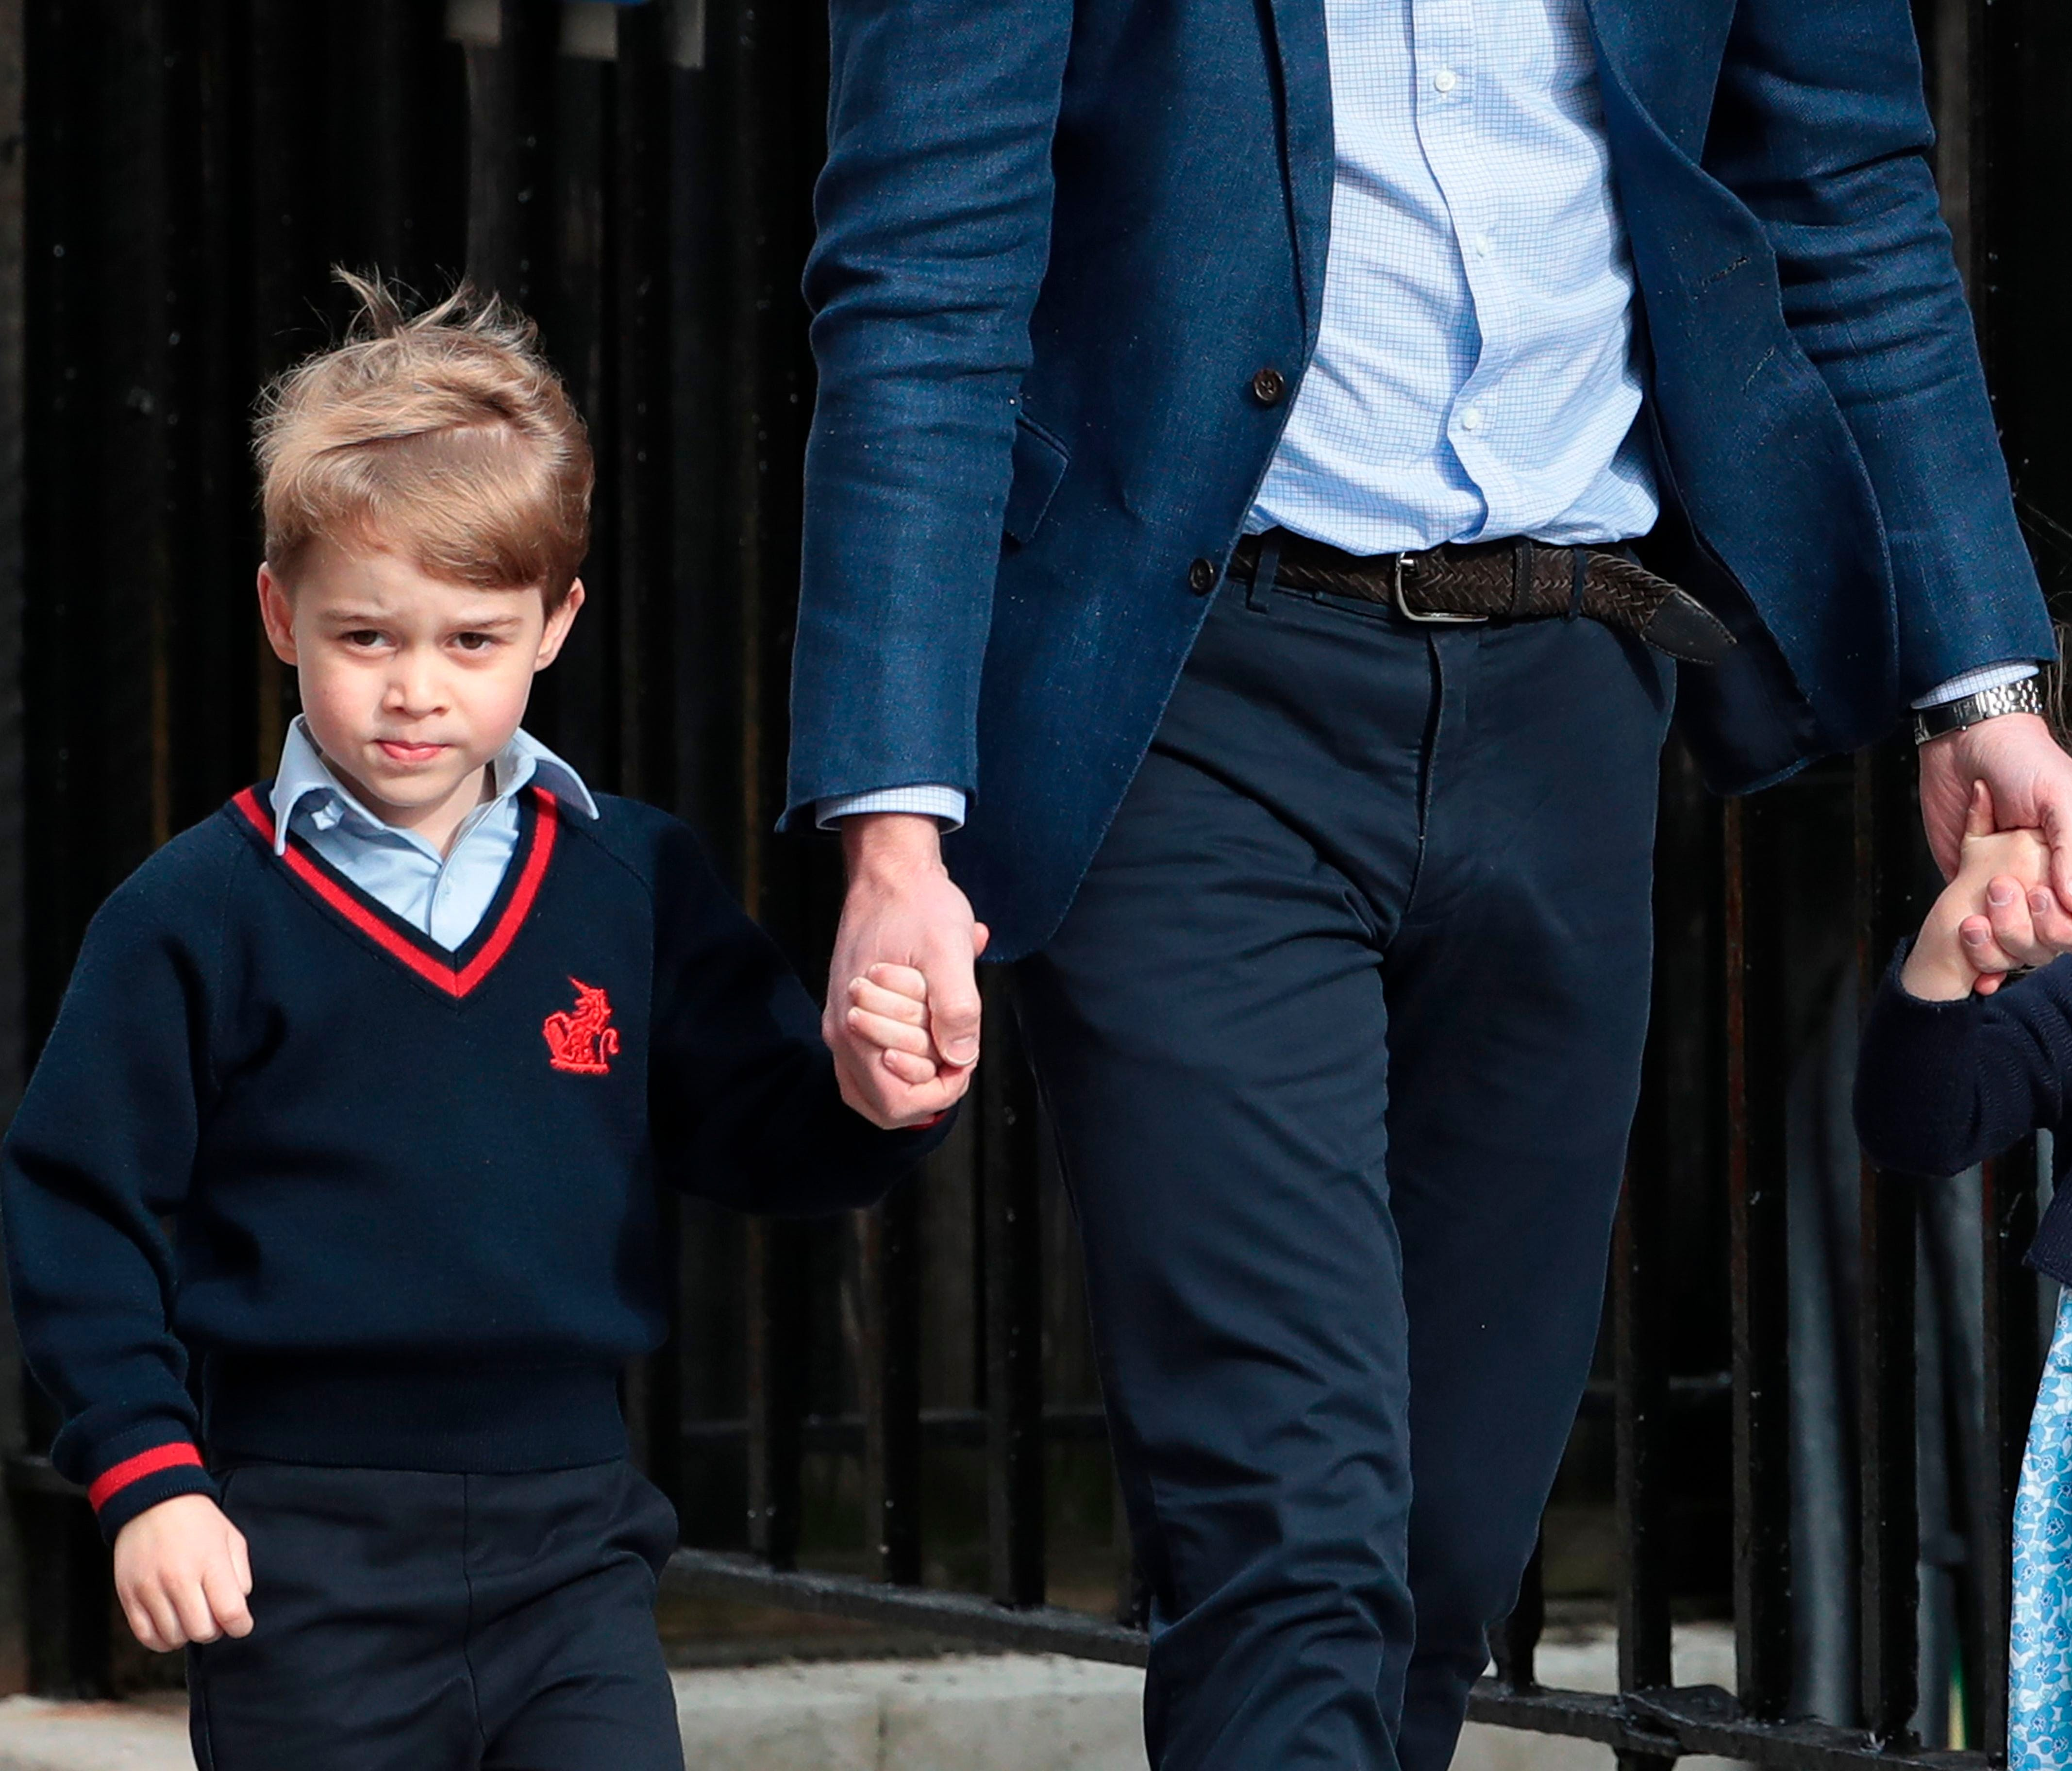 Princess Charlotte of Cambridge waves at the media as she is led in with her brother Prince George of Cambridge by their father Britain's Prince William, Duke of Cambridge, at the Lindo Wing of St Mary's Hospital in central London, on April 23, 2018.